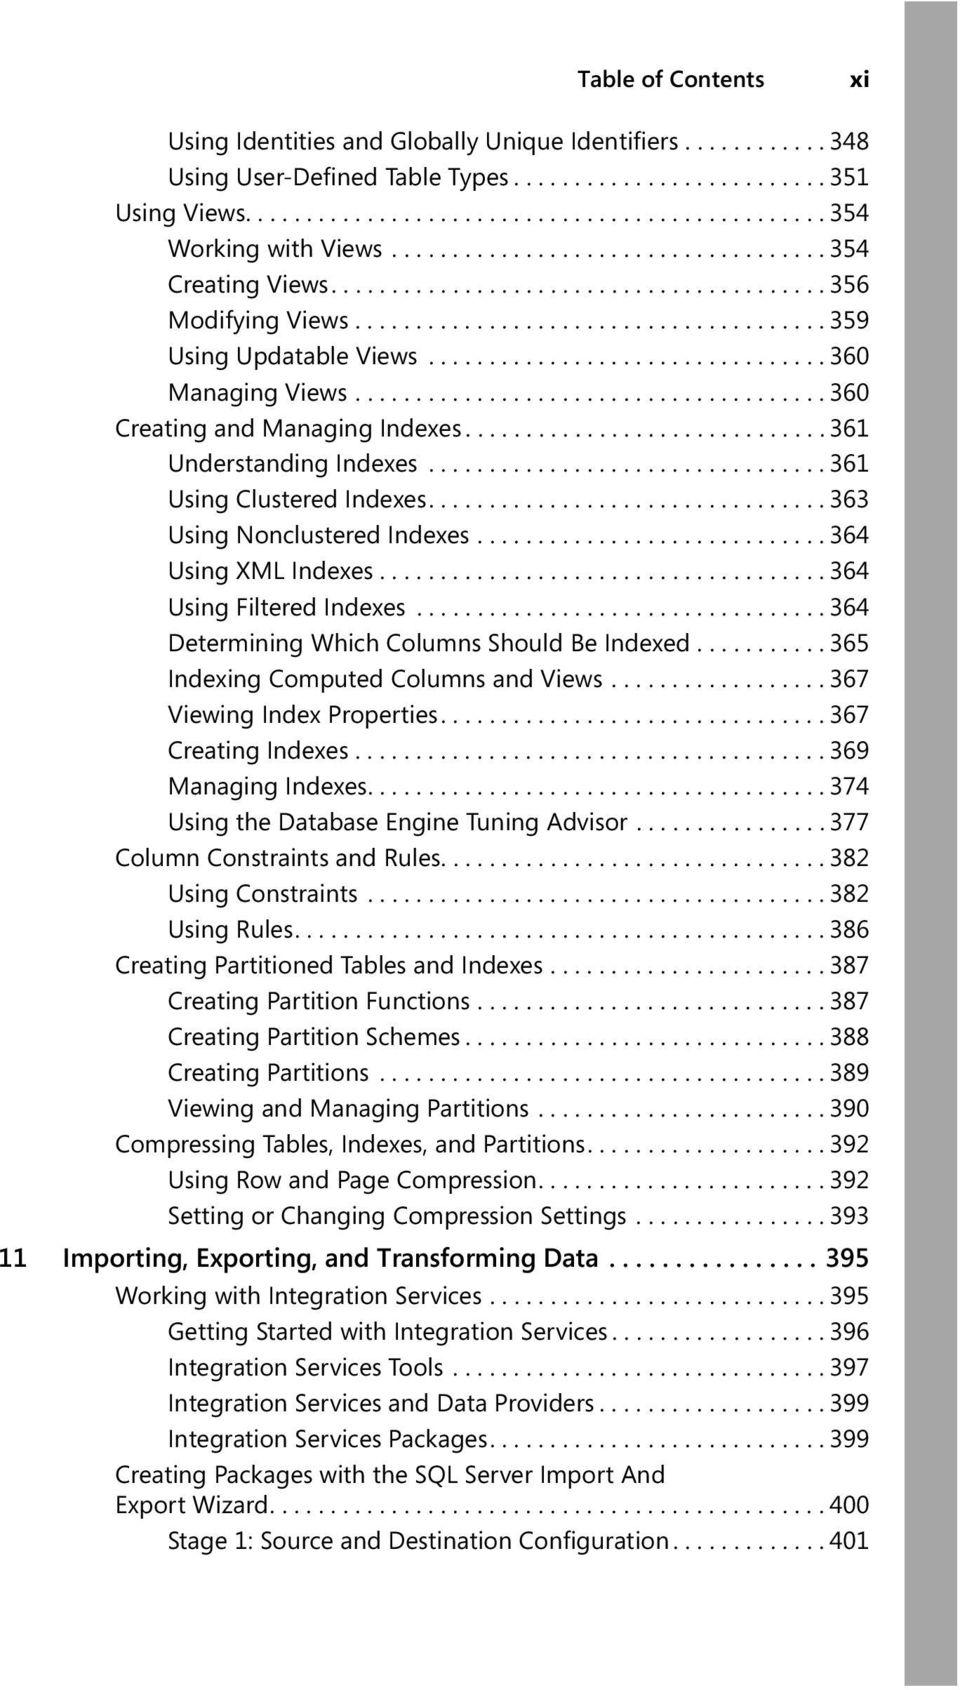 ................................ 360 Managing Views....................................... 360 Creating and Managing Indexes.............................. 361 Understanding Indexes.